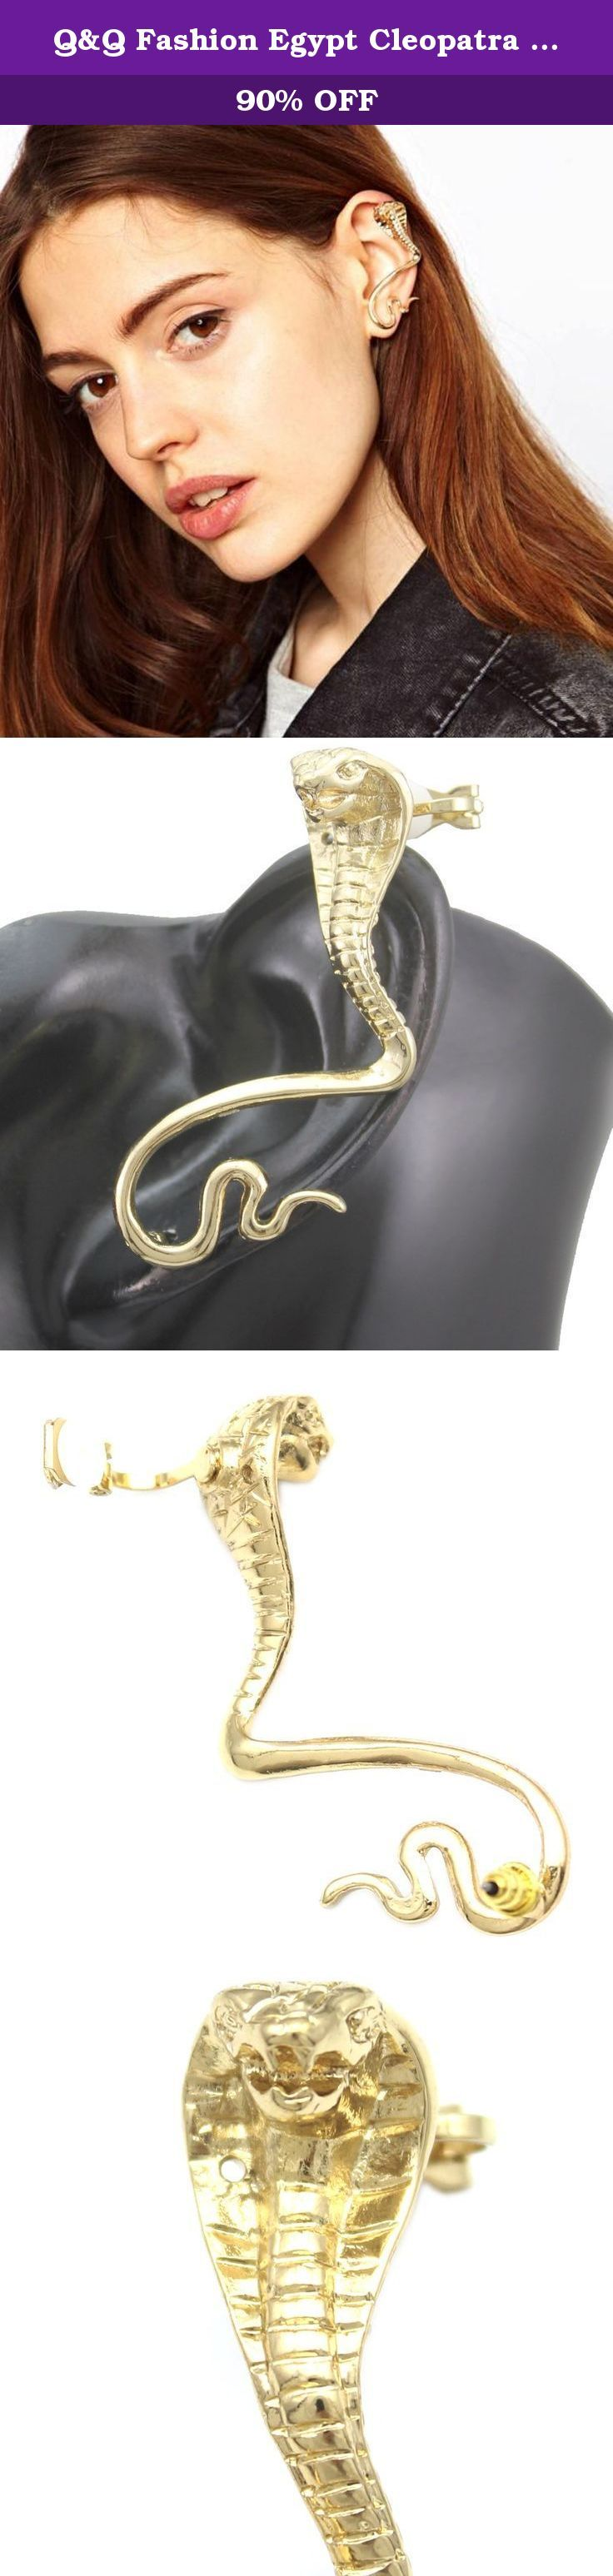 Q&Q Fashion Egypt Cleopatra Gold 3D Snake Cobra Ear Cuff Stud Earring Goth Punk Fancy Dress. Q&Q Fashion Egypt Cleopatra Gold 3D Snake Cobra Ear Cuff Stud Earring Goth Punk Fancy Dress Art Nouveau style ,Art Deco style ,Fancy Dress style and so on it`s for occasions like Party,Fashion Show,Photo,Prom.and so on .